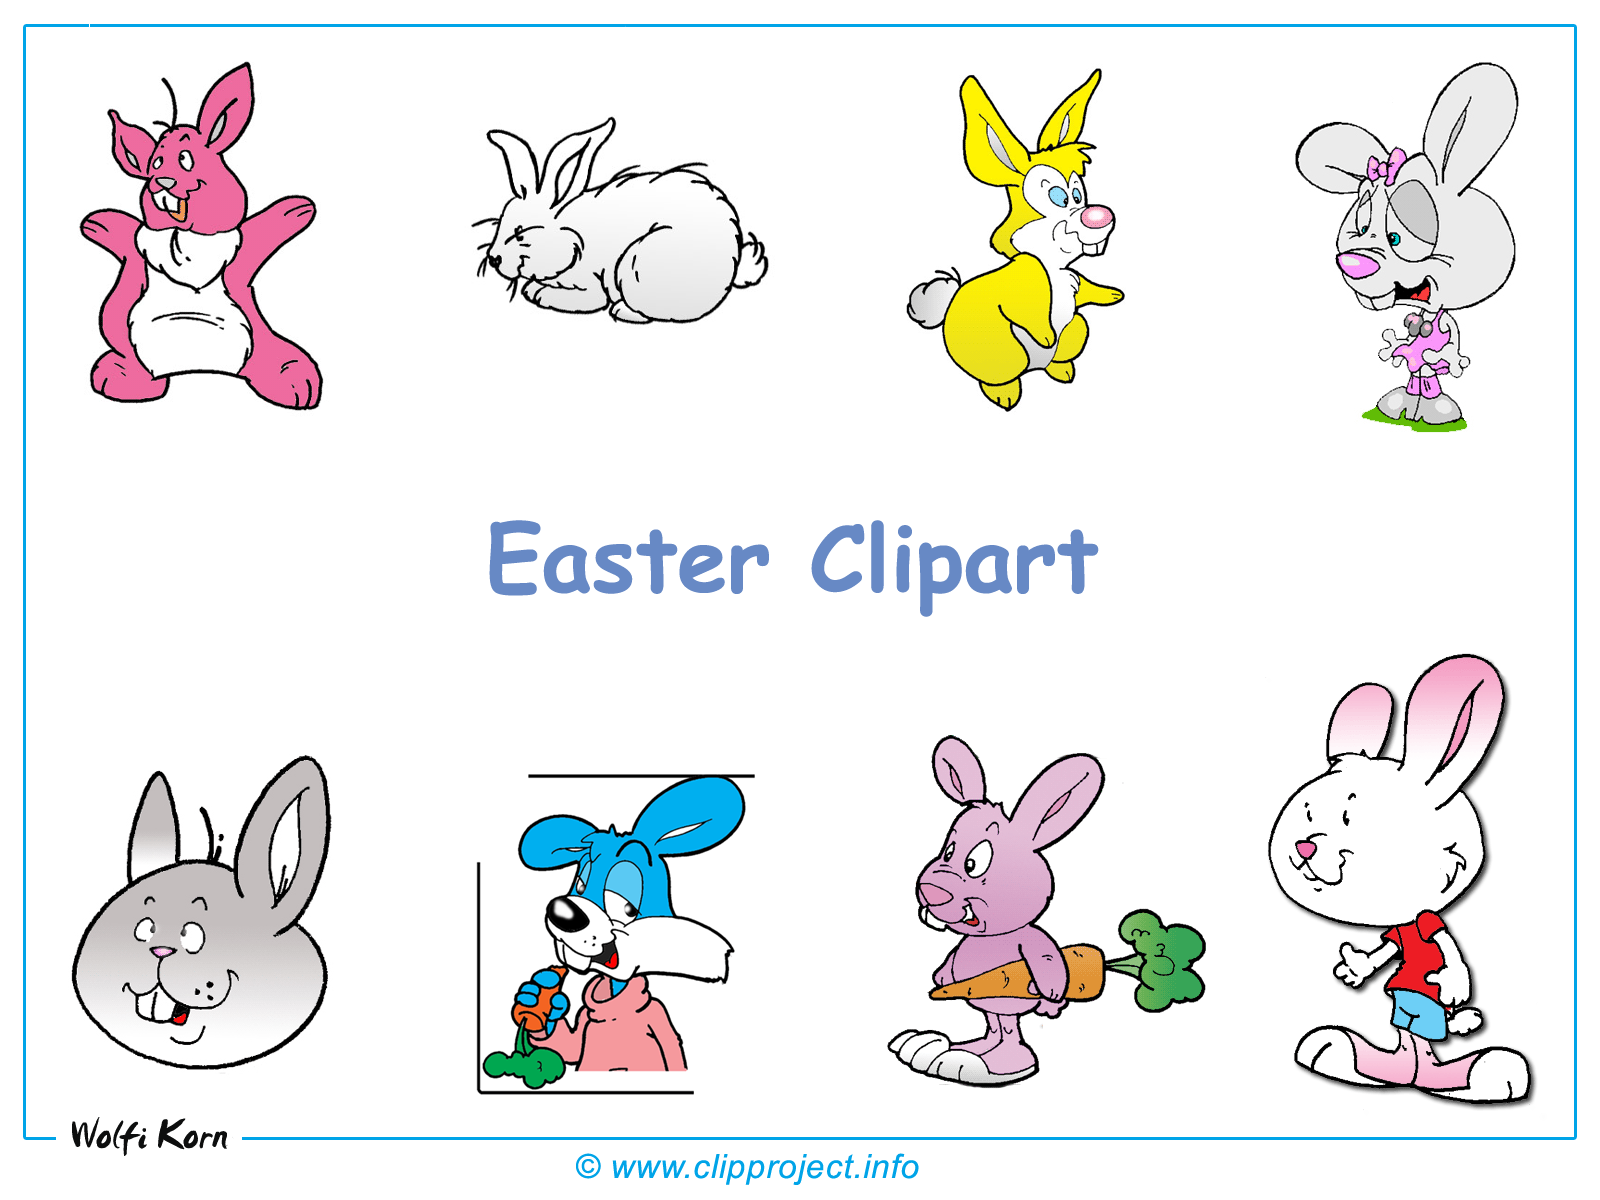 easter clipart to download - photo #45